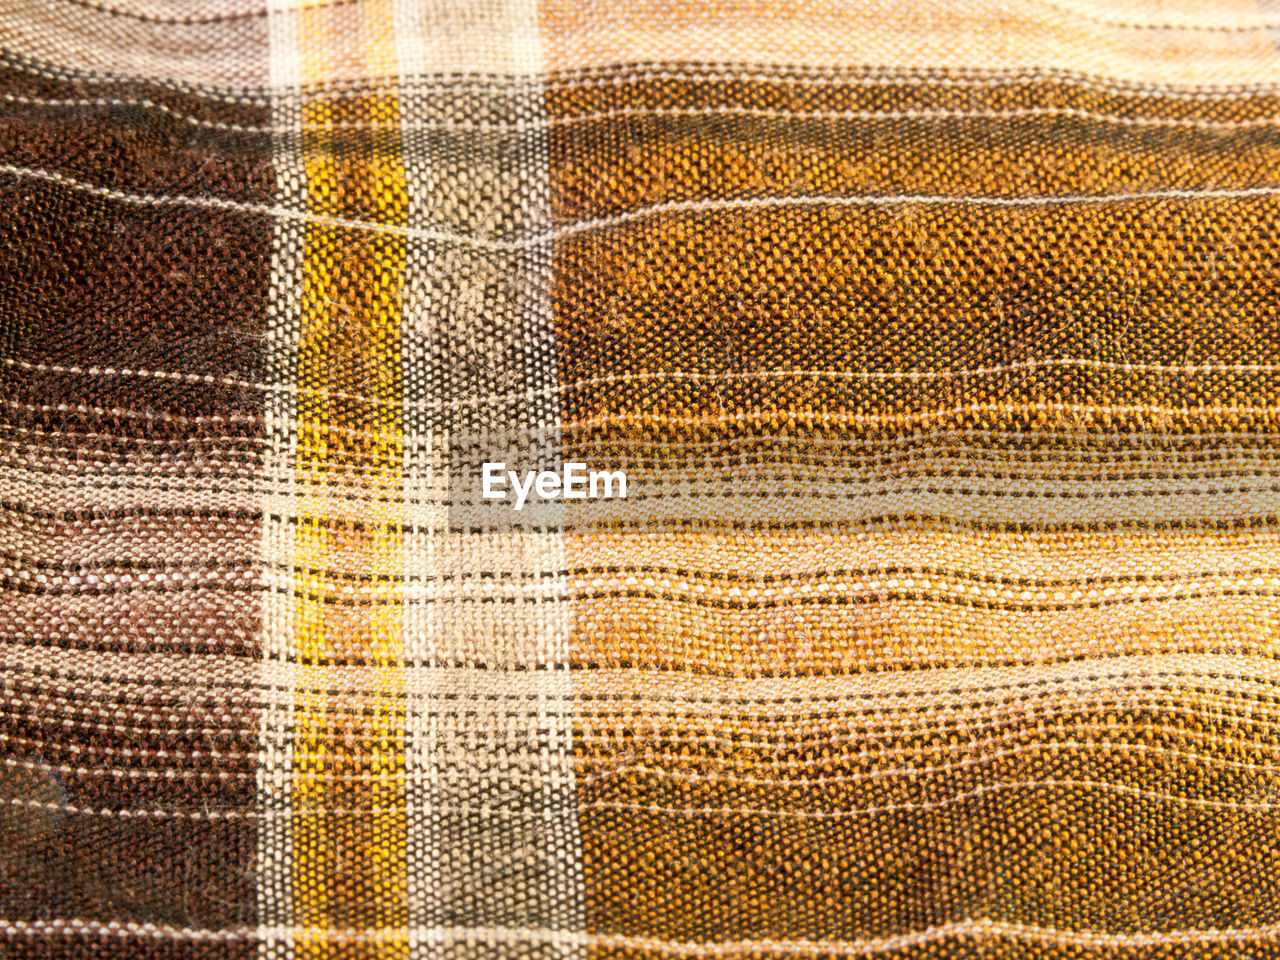 backgrounds, pattern, no people, full frame, yellow, textured, close-up, textile, water, striped, multi colored, brown, abstract, material, black color, nature, glass, transparent, indoors, textured effect